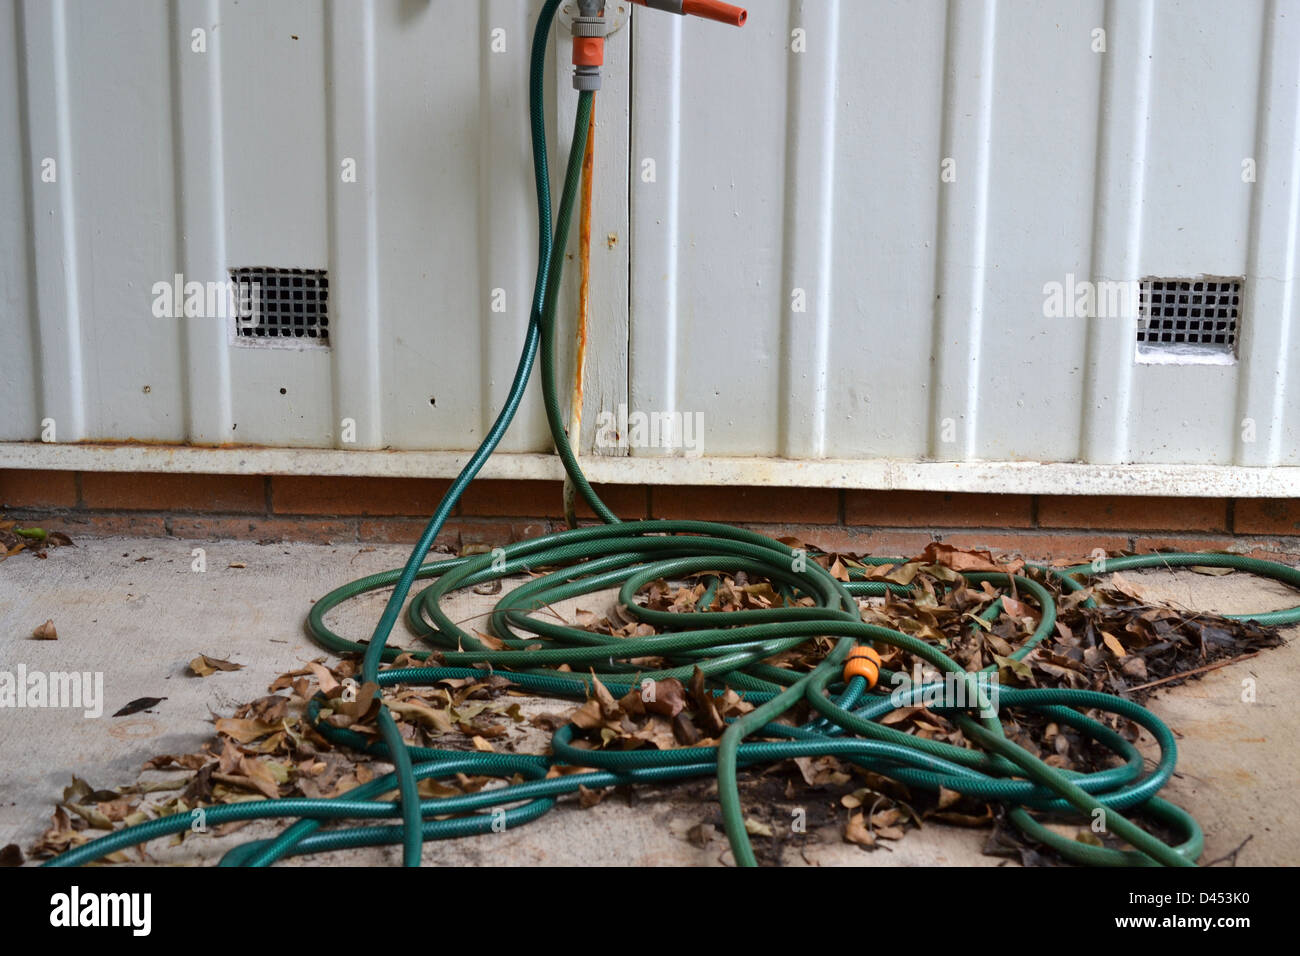 Untidy Garden Hose Tangled In Leaves At Side Of House